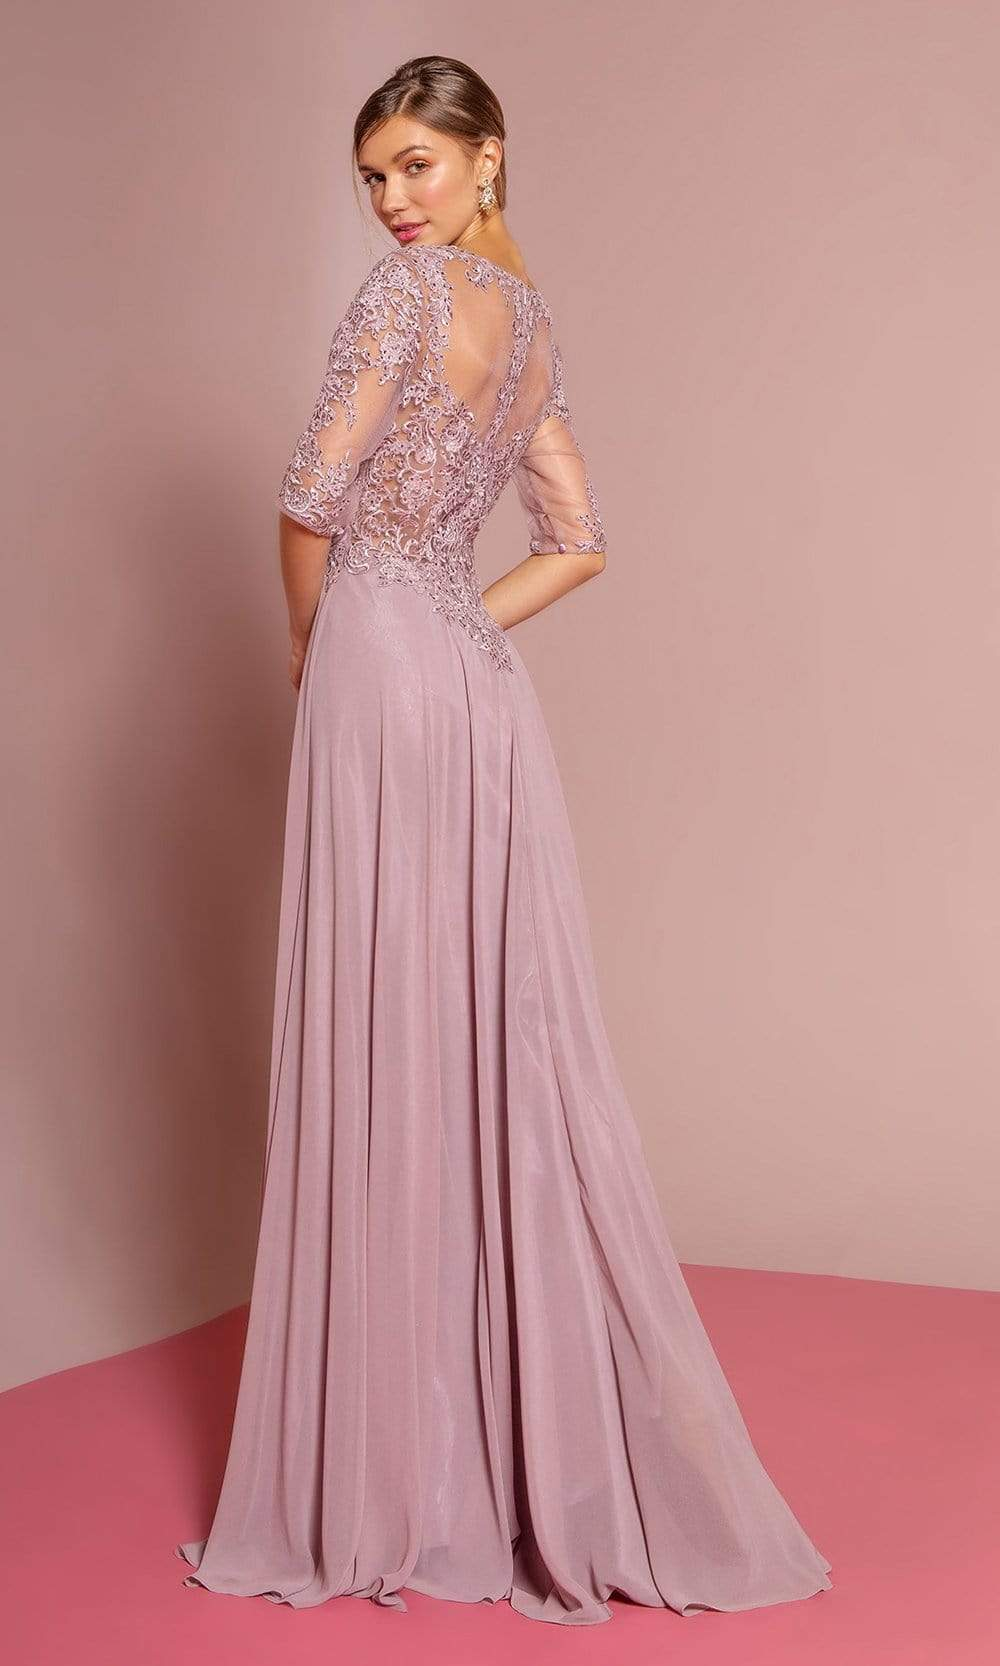 Elizabeth K - GL2681 Half Sleeve Embroidered Illusion Lace Gown Special Occasion Dress